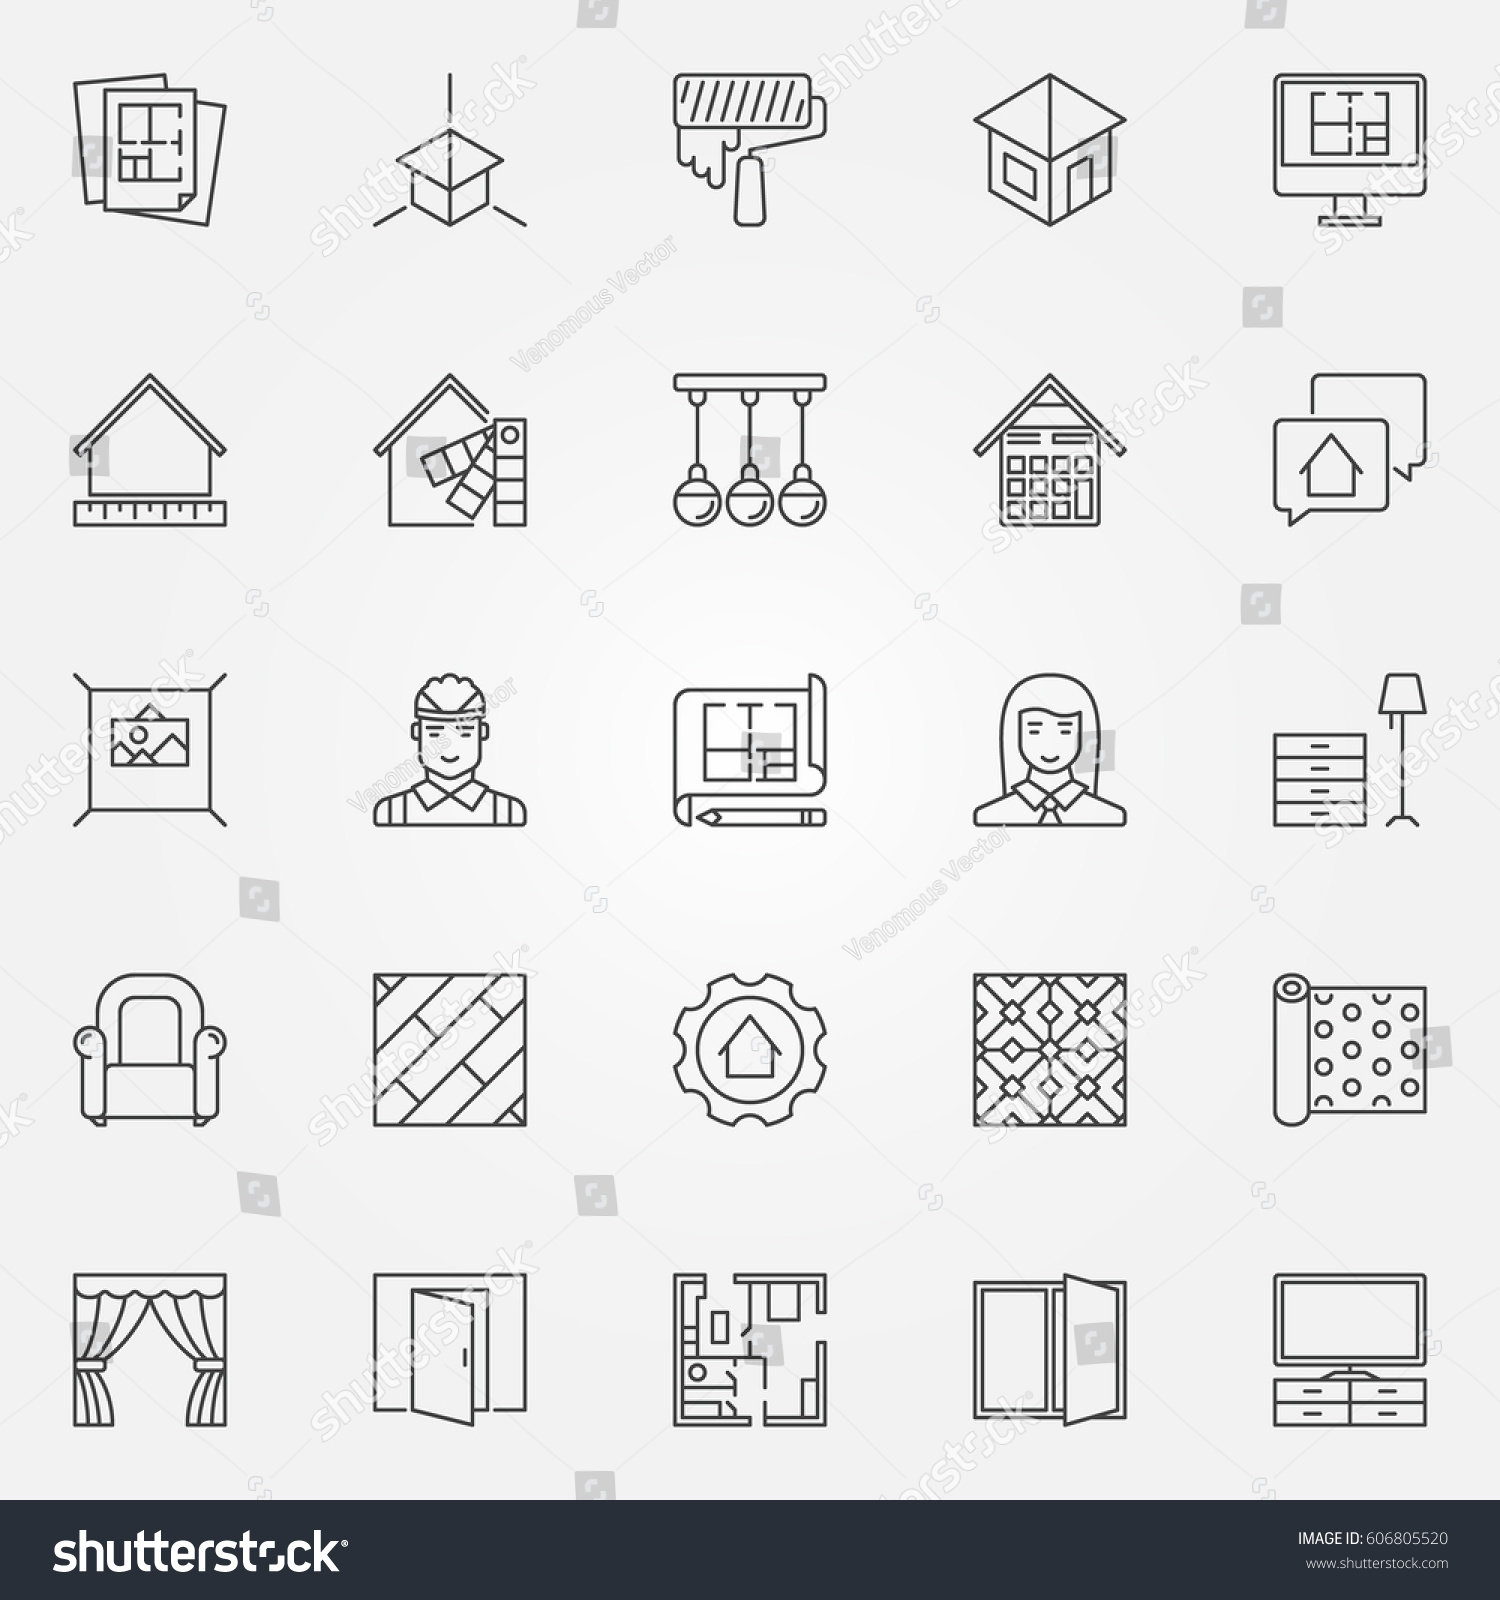 Interior design icons set vector architecture stock vector vector architecture symbols for design company signs or design elements in biocorpaavc Images